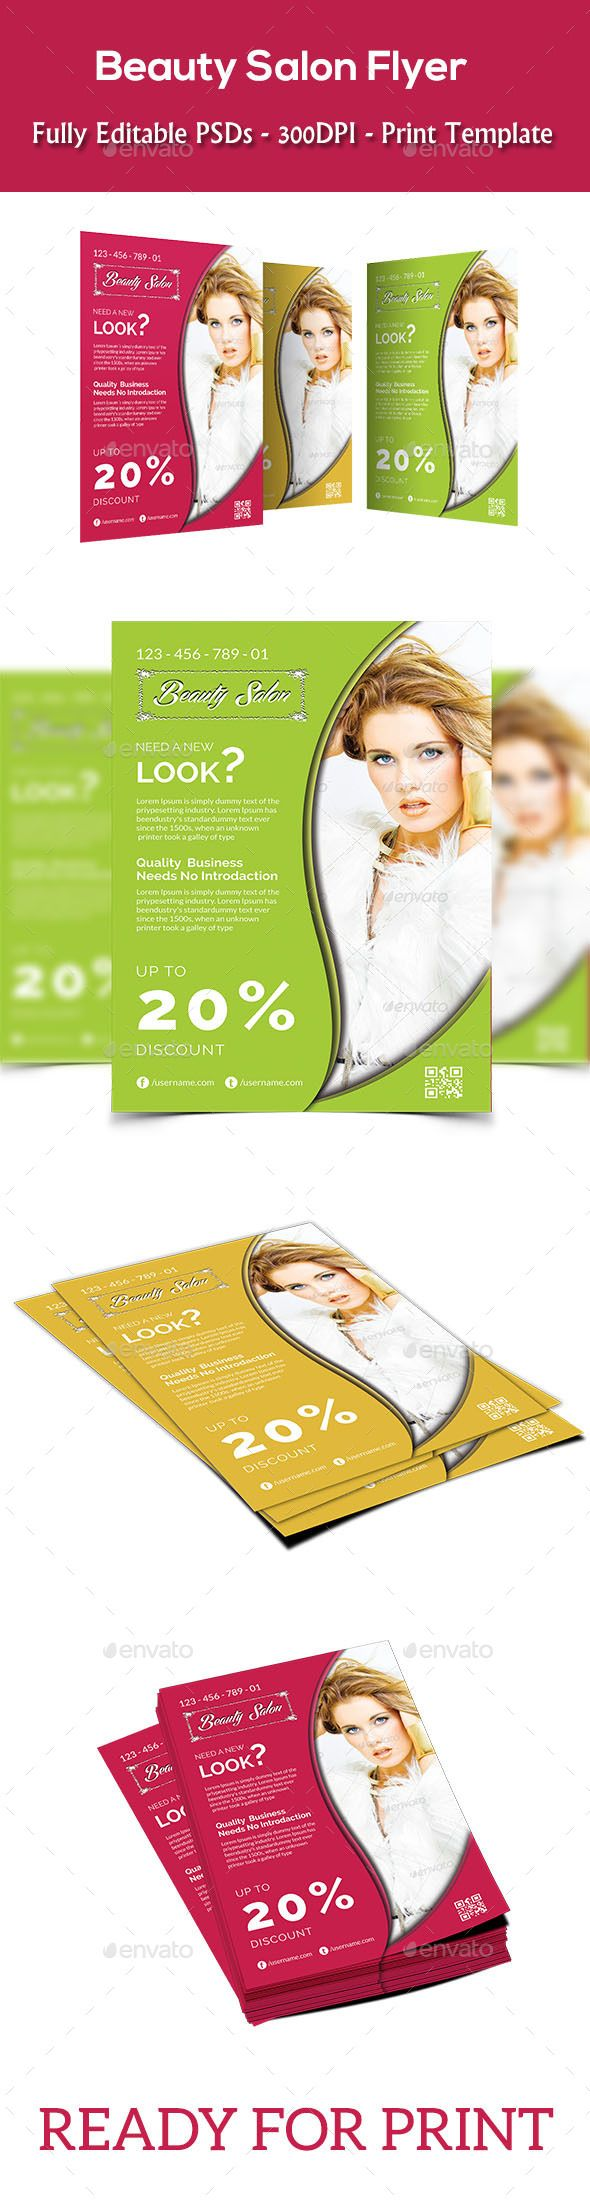 beauty salon flyer beauty flyers and photoshop buy beauty salon flyer by theweb designs on graphicriver thank you for purchasing our item from the envato marketplace what s included the package